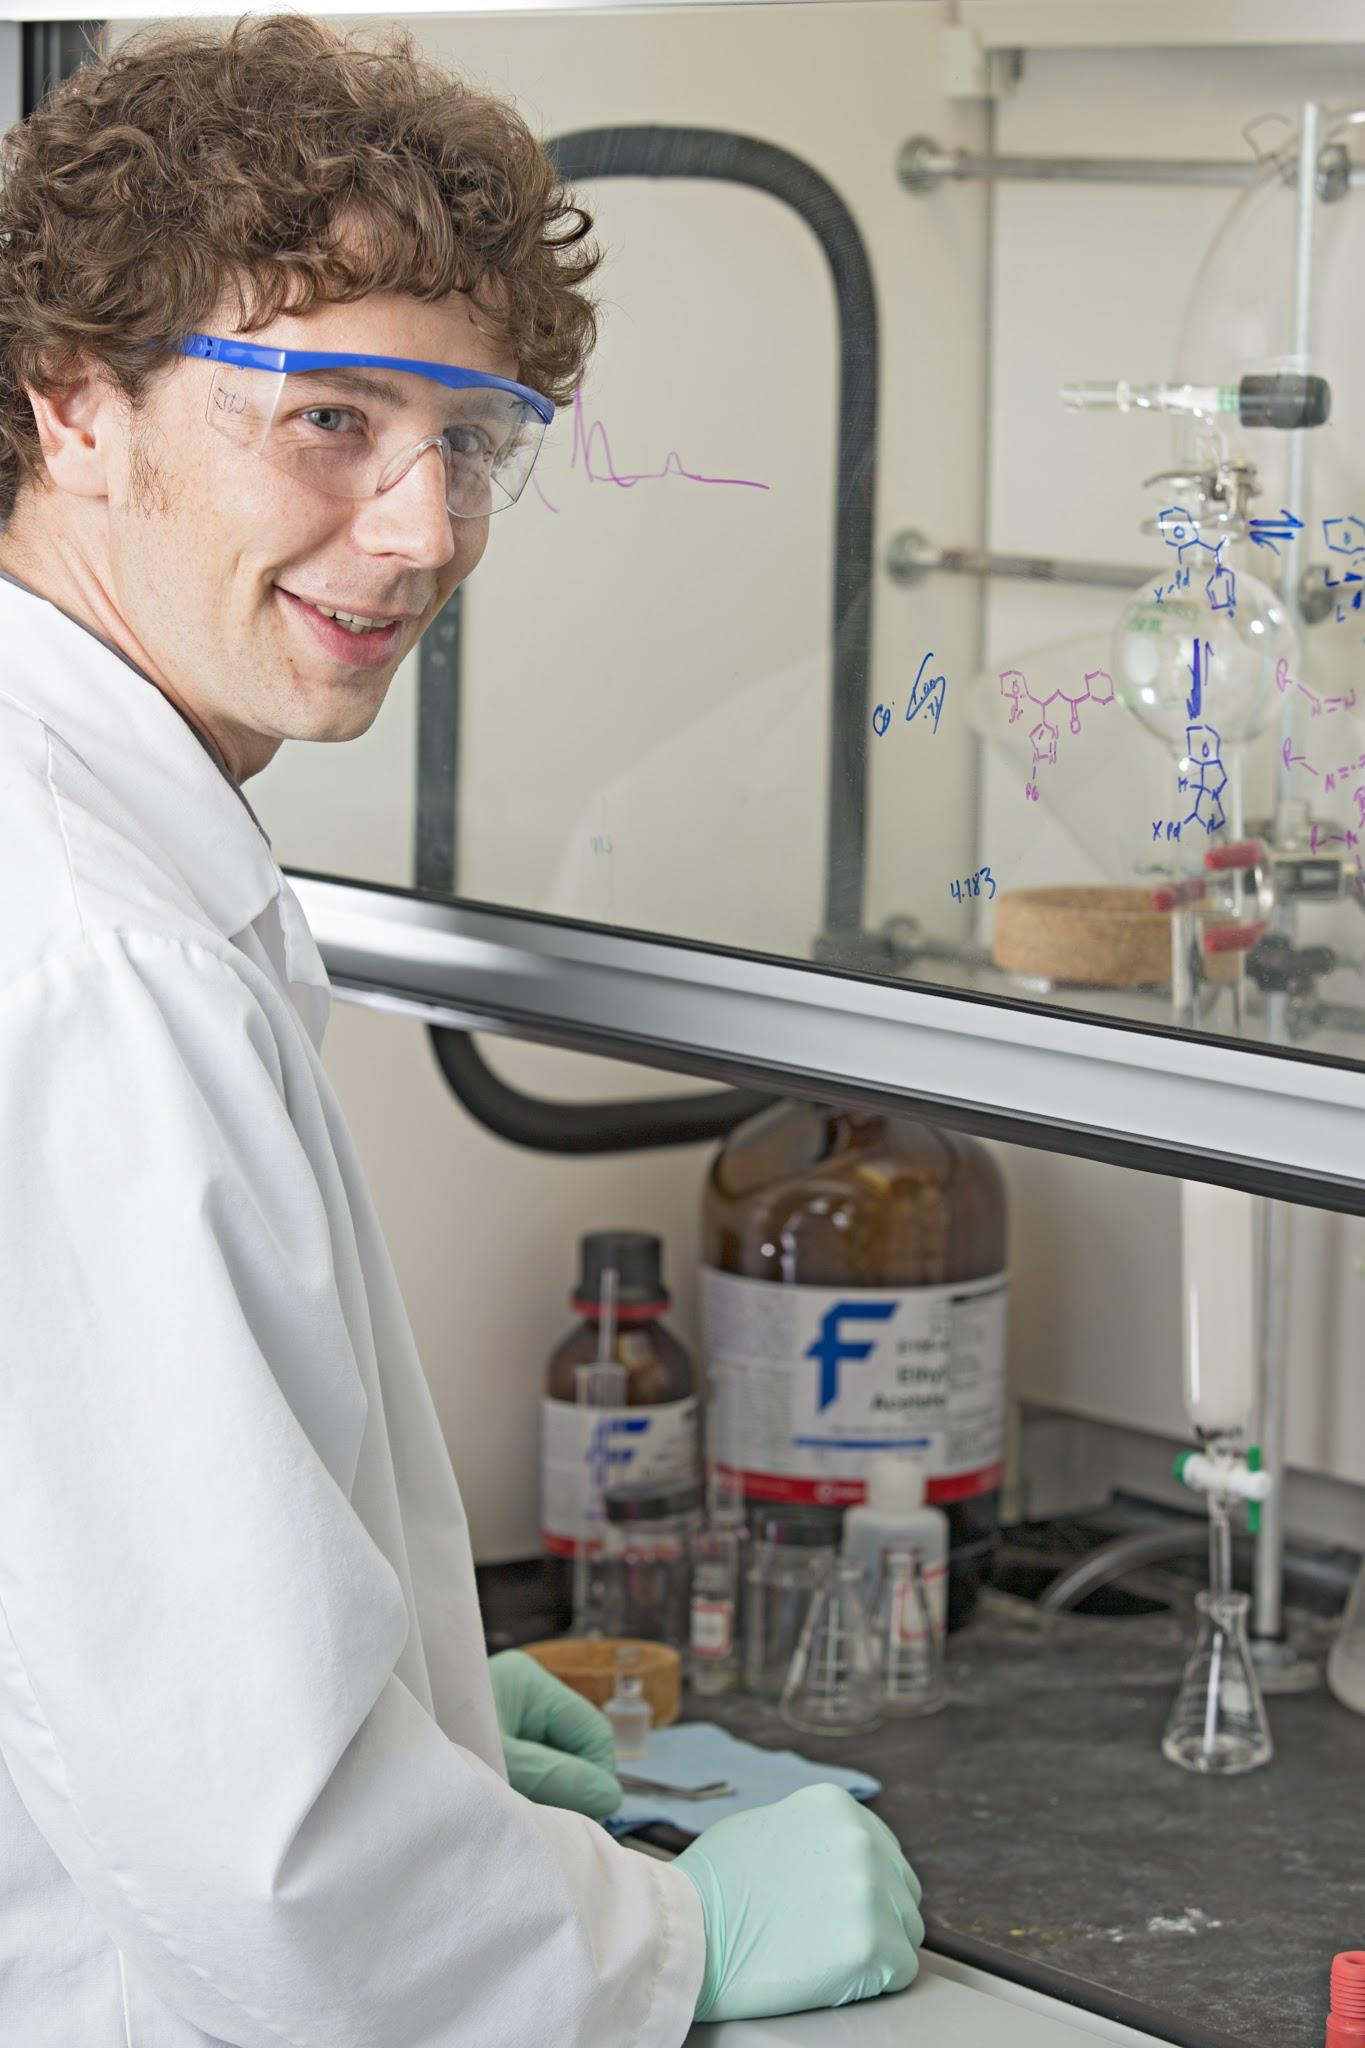 Person in a lab coat and safety glasses with bottles of chemicals & science equipment in the background